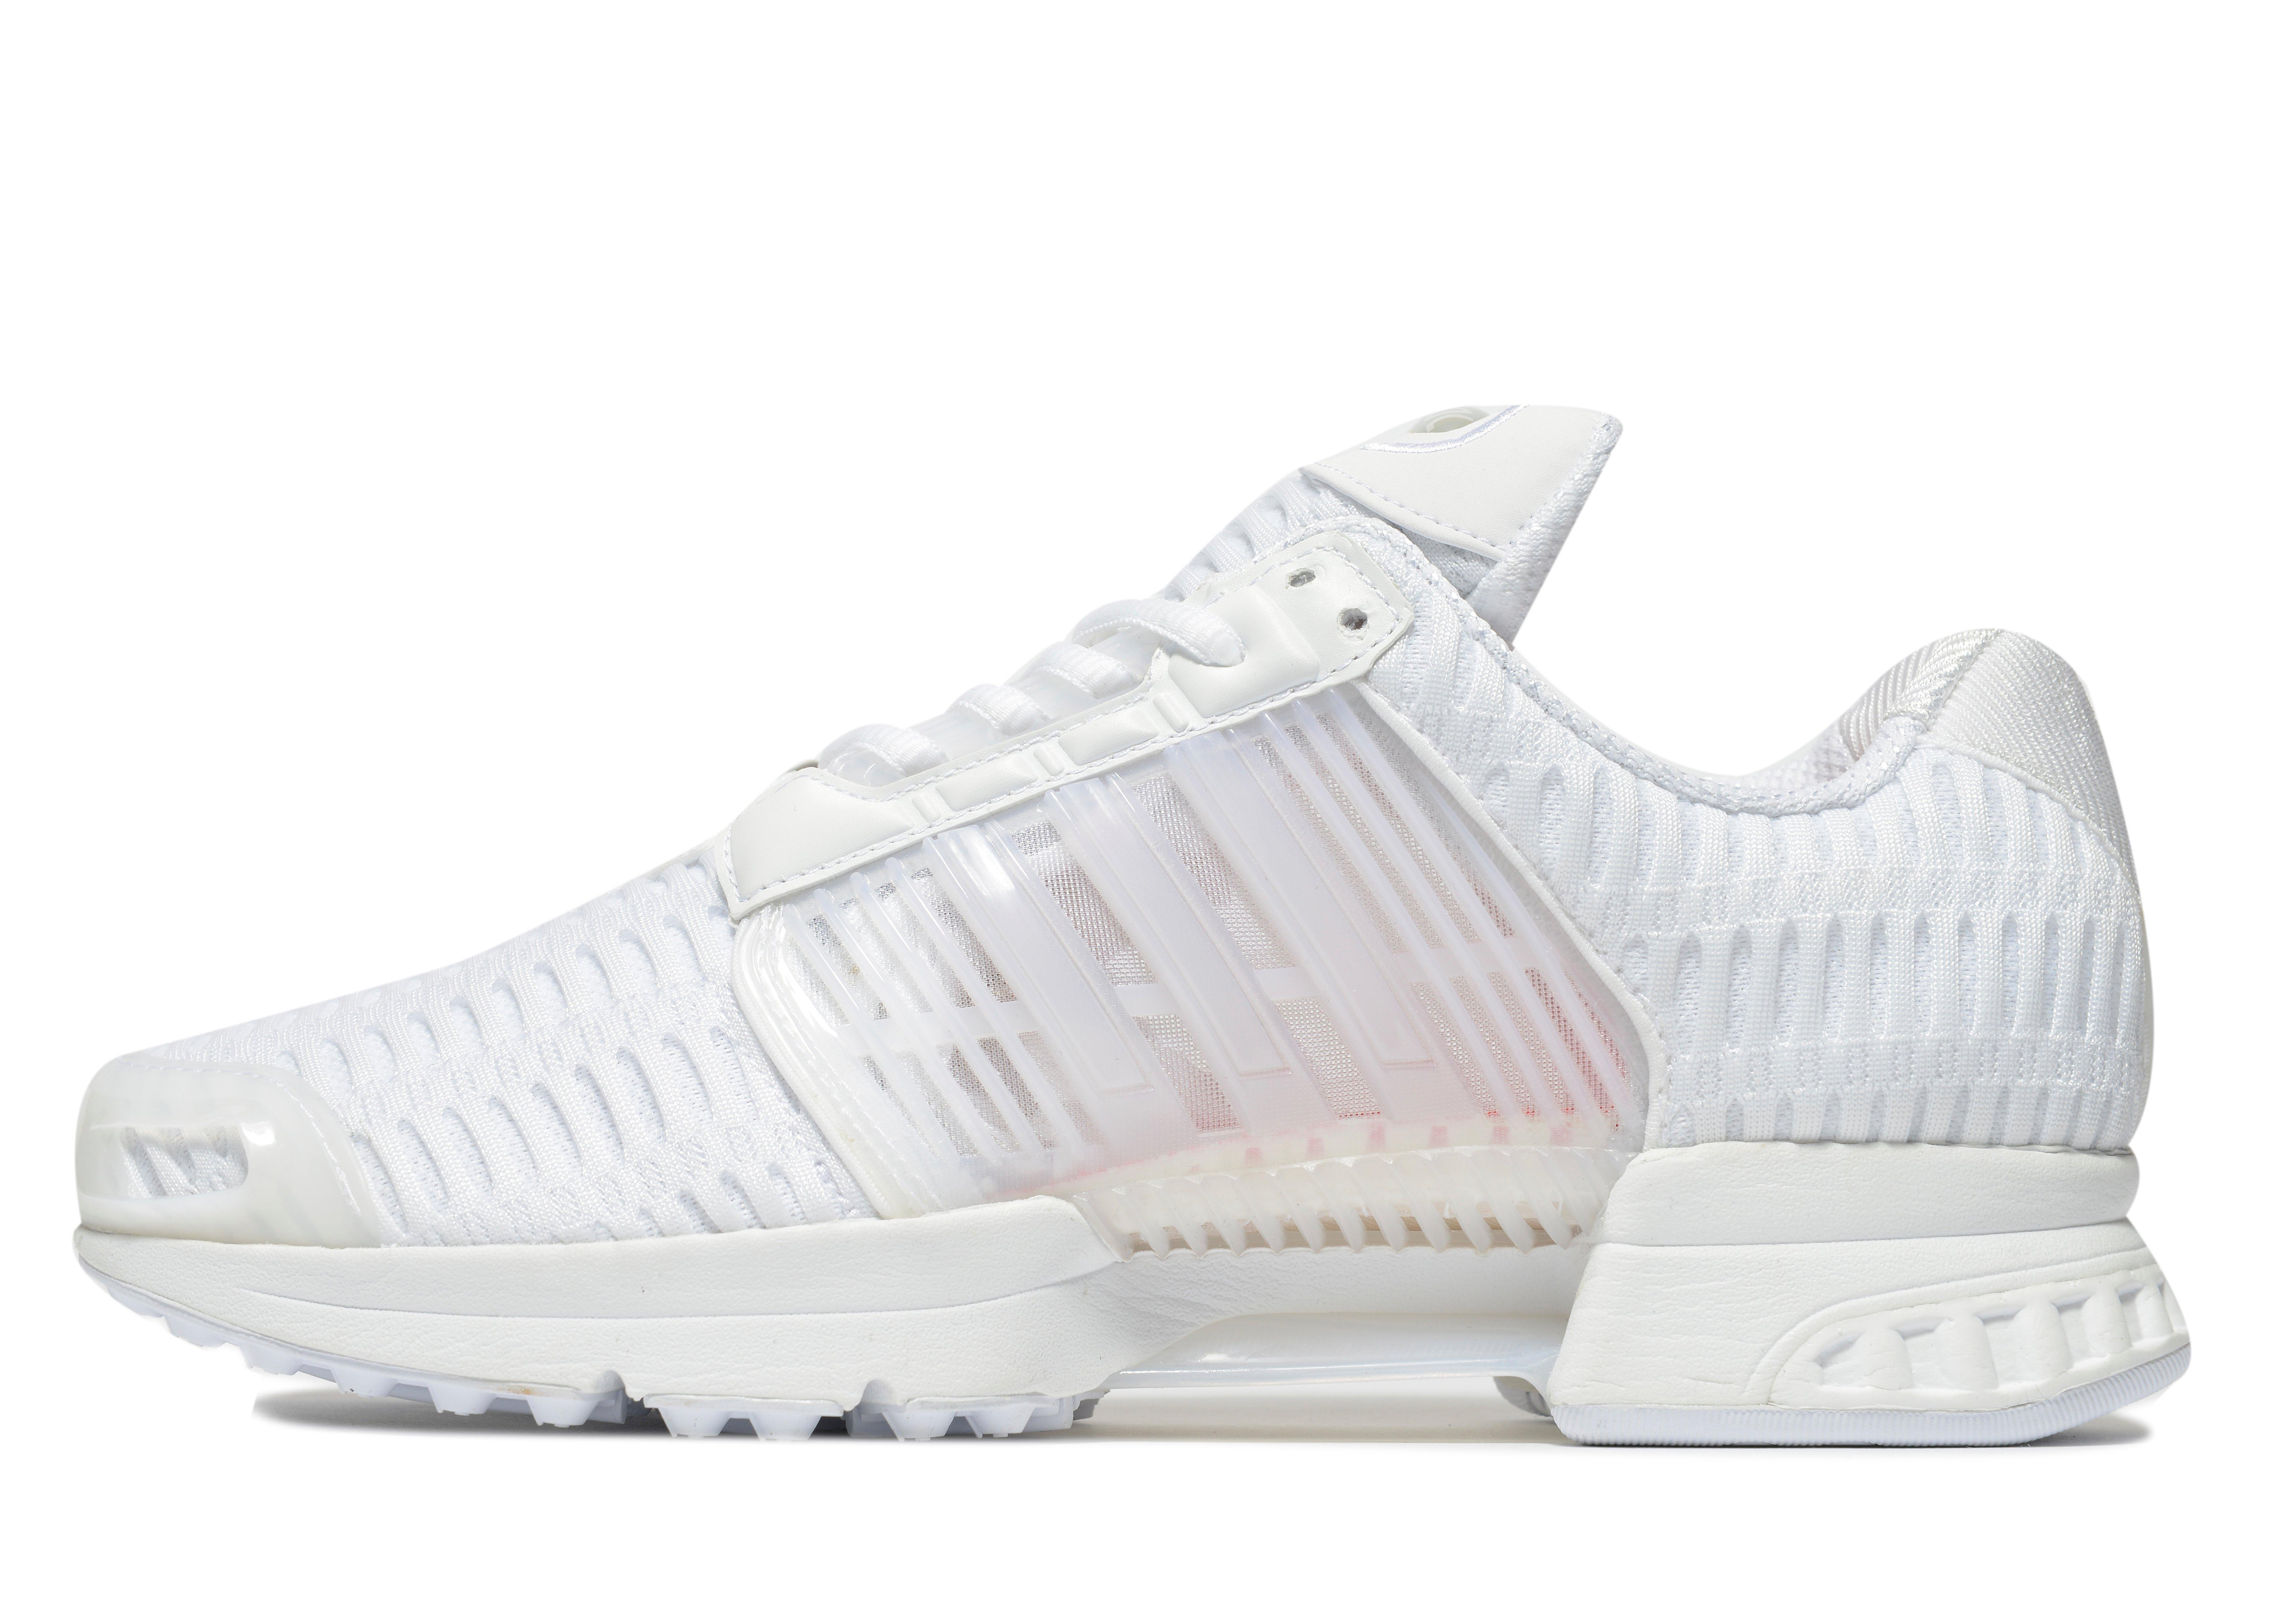 premium selection 84ee0 24611 adidas Originals Climacool 1 in White - Lyst